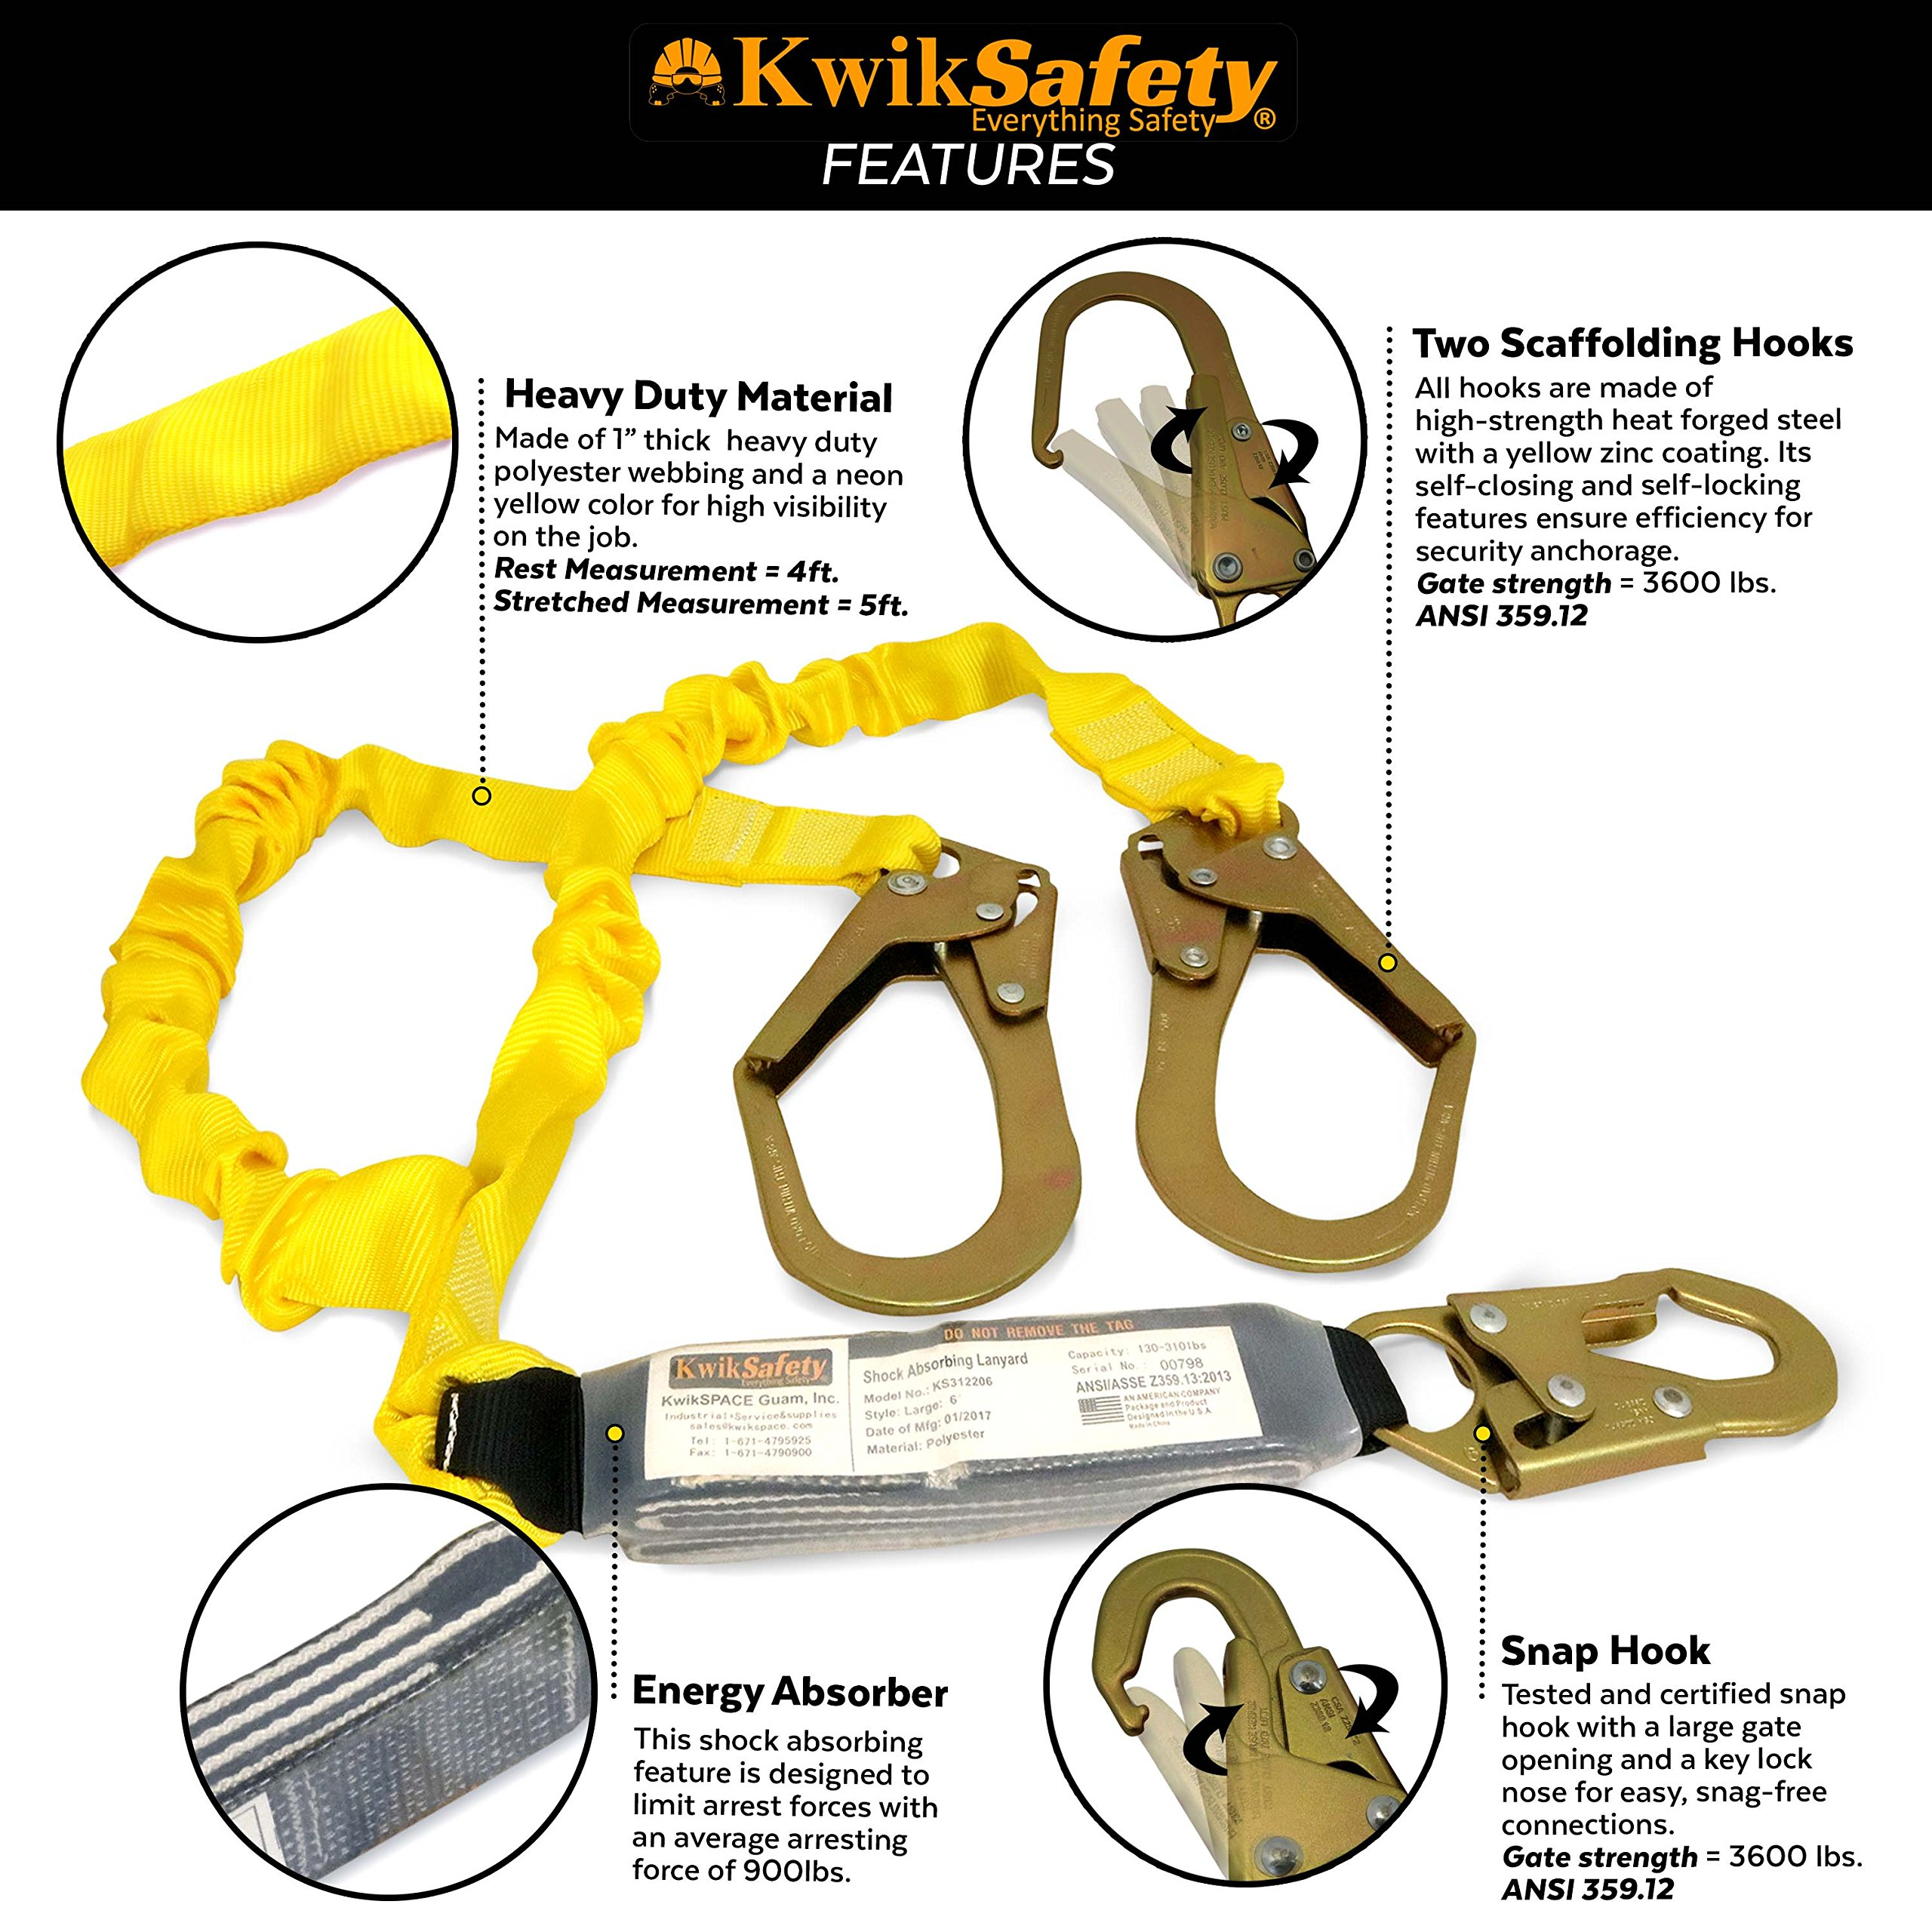 KwikSafety PYTHON   Double Leg 6ft Tubular Stretch Safety Lanyard   OSHA Approved ANSI Compliant Fall Protection   EXTERNAL Shock Absorber   Construction Arborist Roofing   Snap & Rebar Hook Connector by KwikSafety (Image #4)